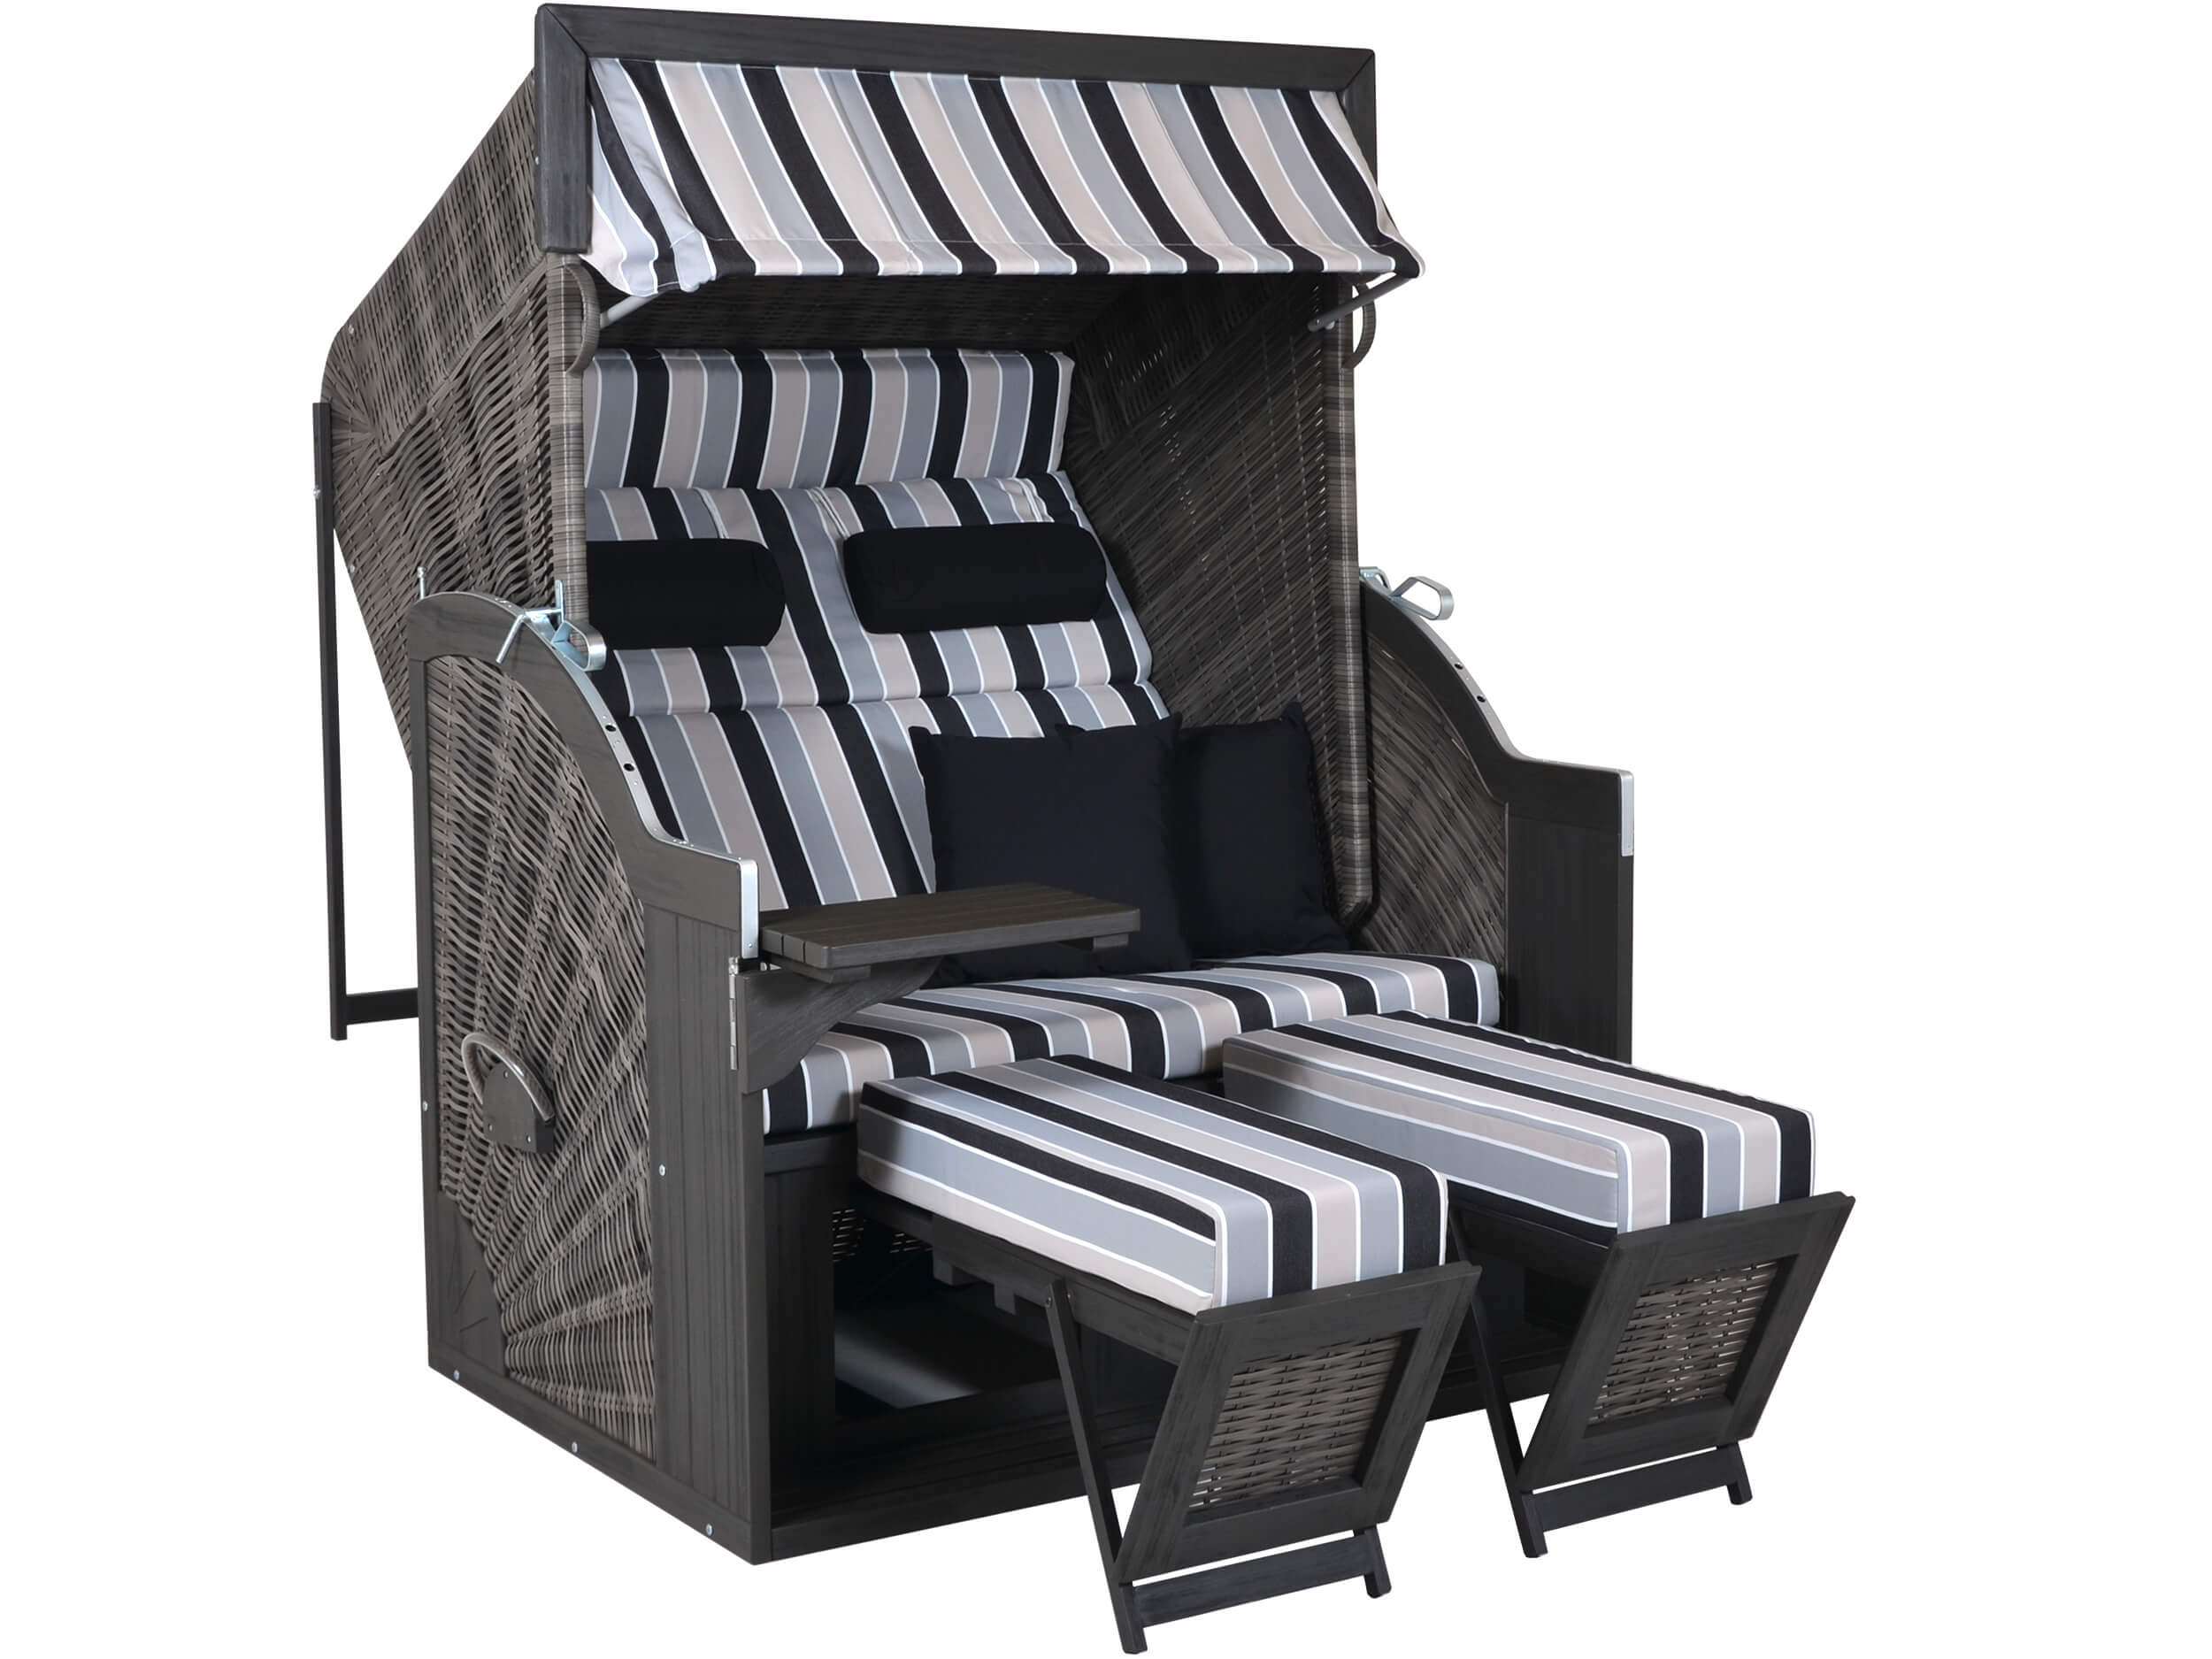 strandk rbe g nstig online kaufen gartenm bel l nse. Black Bedroom Furniture Sets. Home Design Ideas